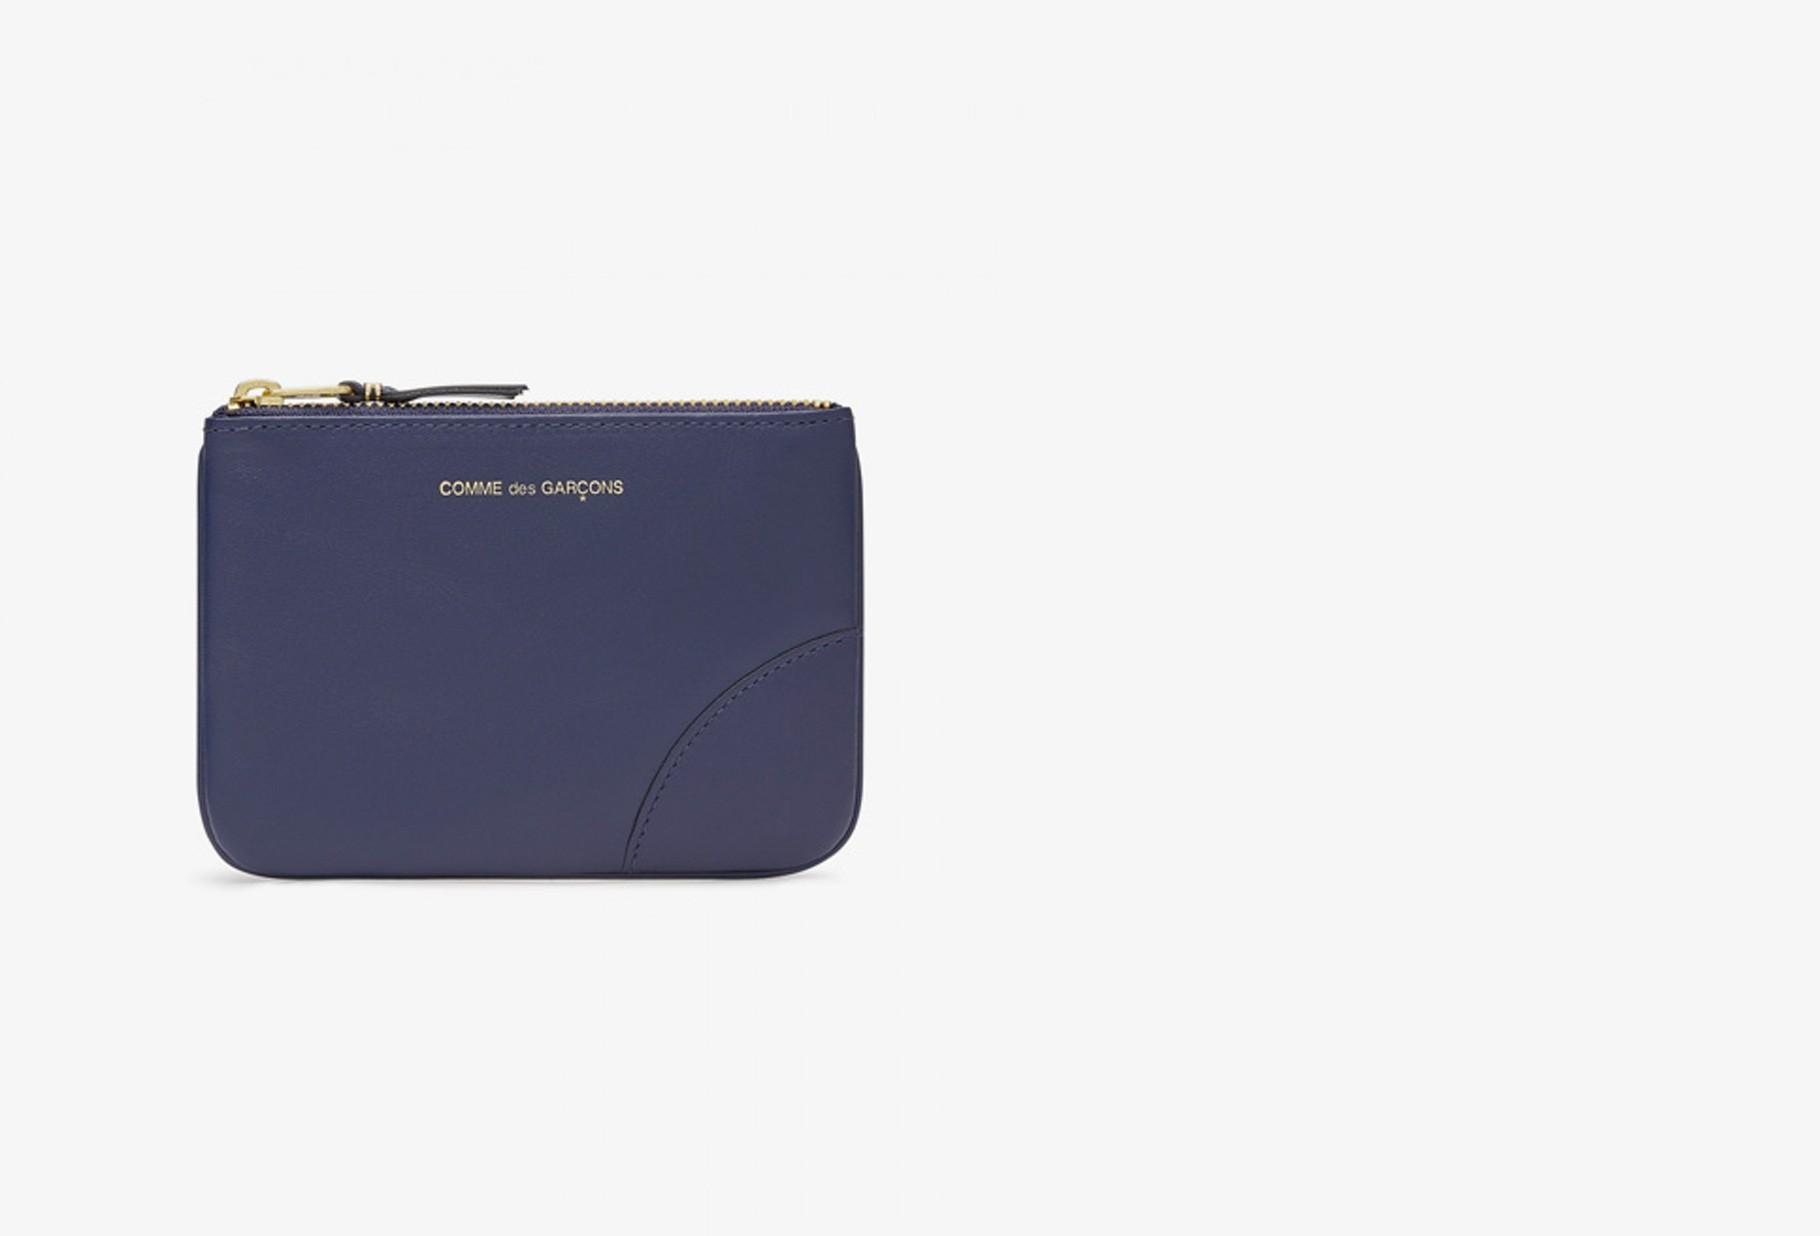 COMME DES GARÇONS WALLETS / Cdg leather wallet classic Sa8100 navy